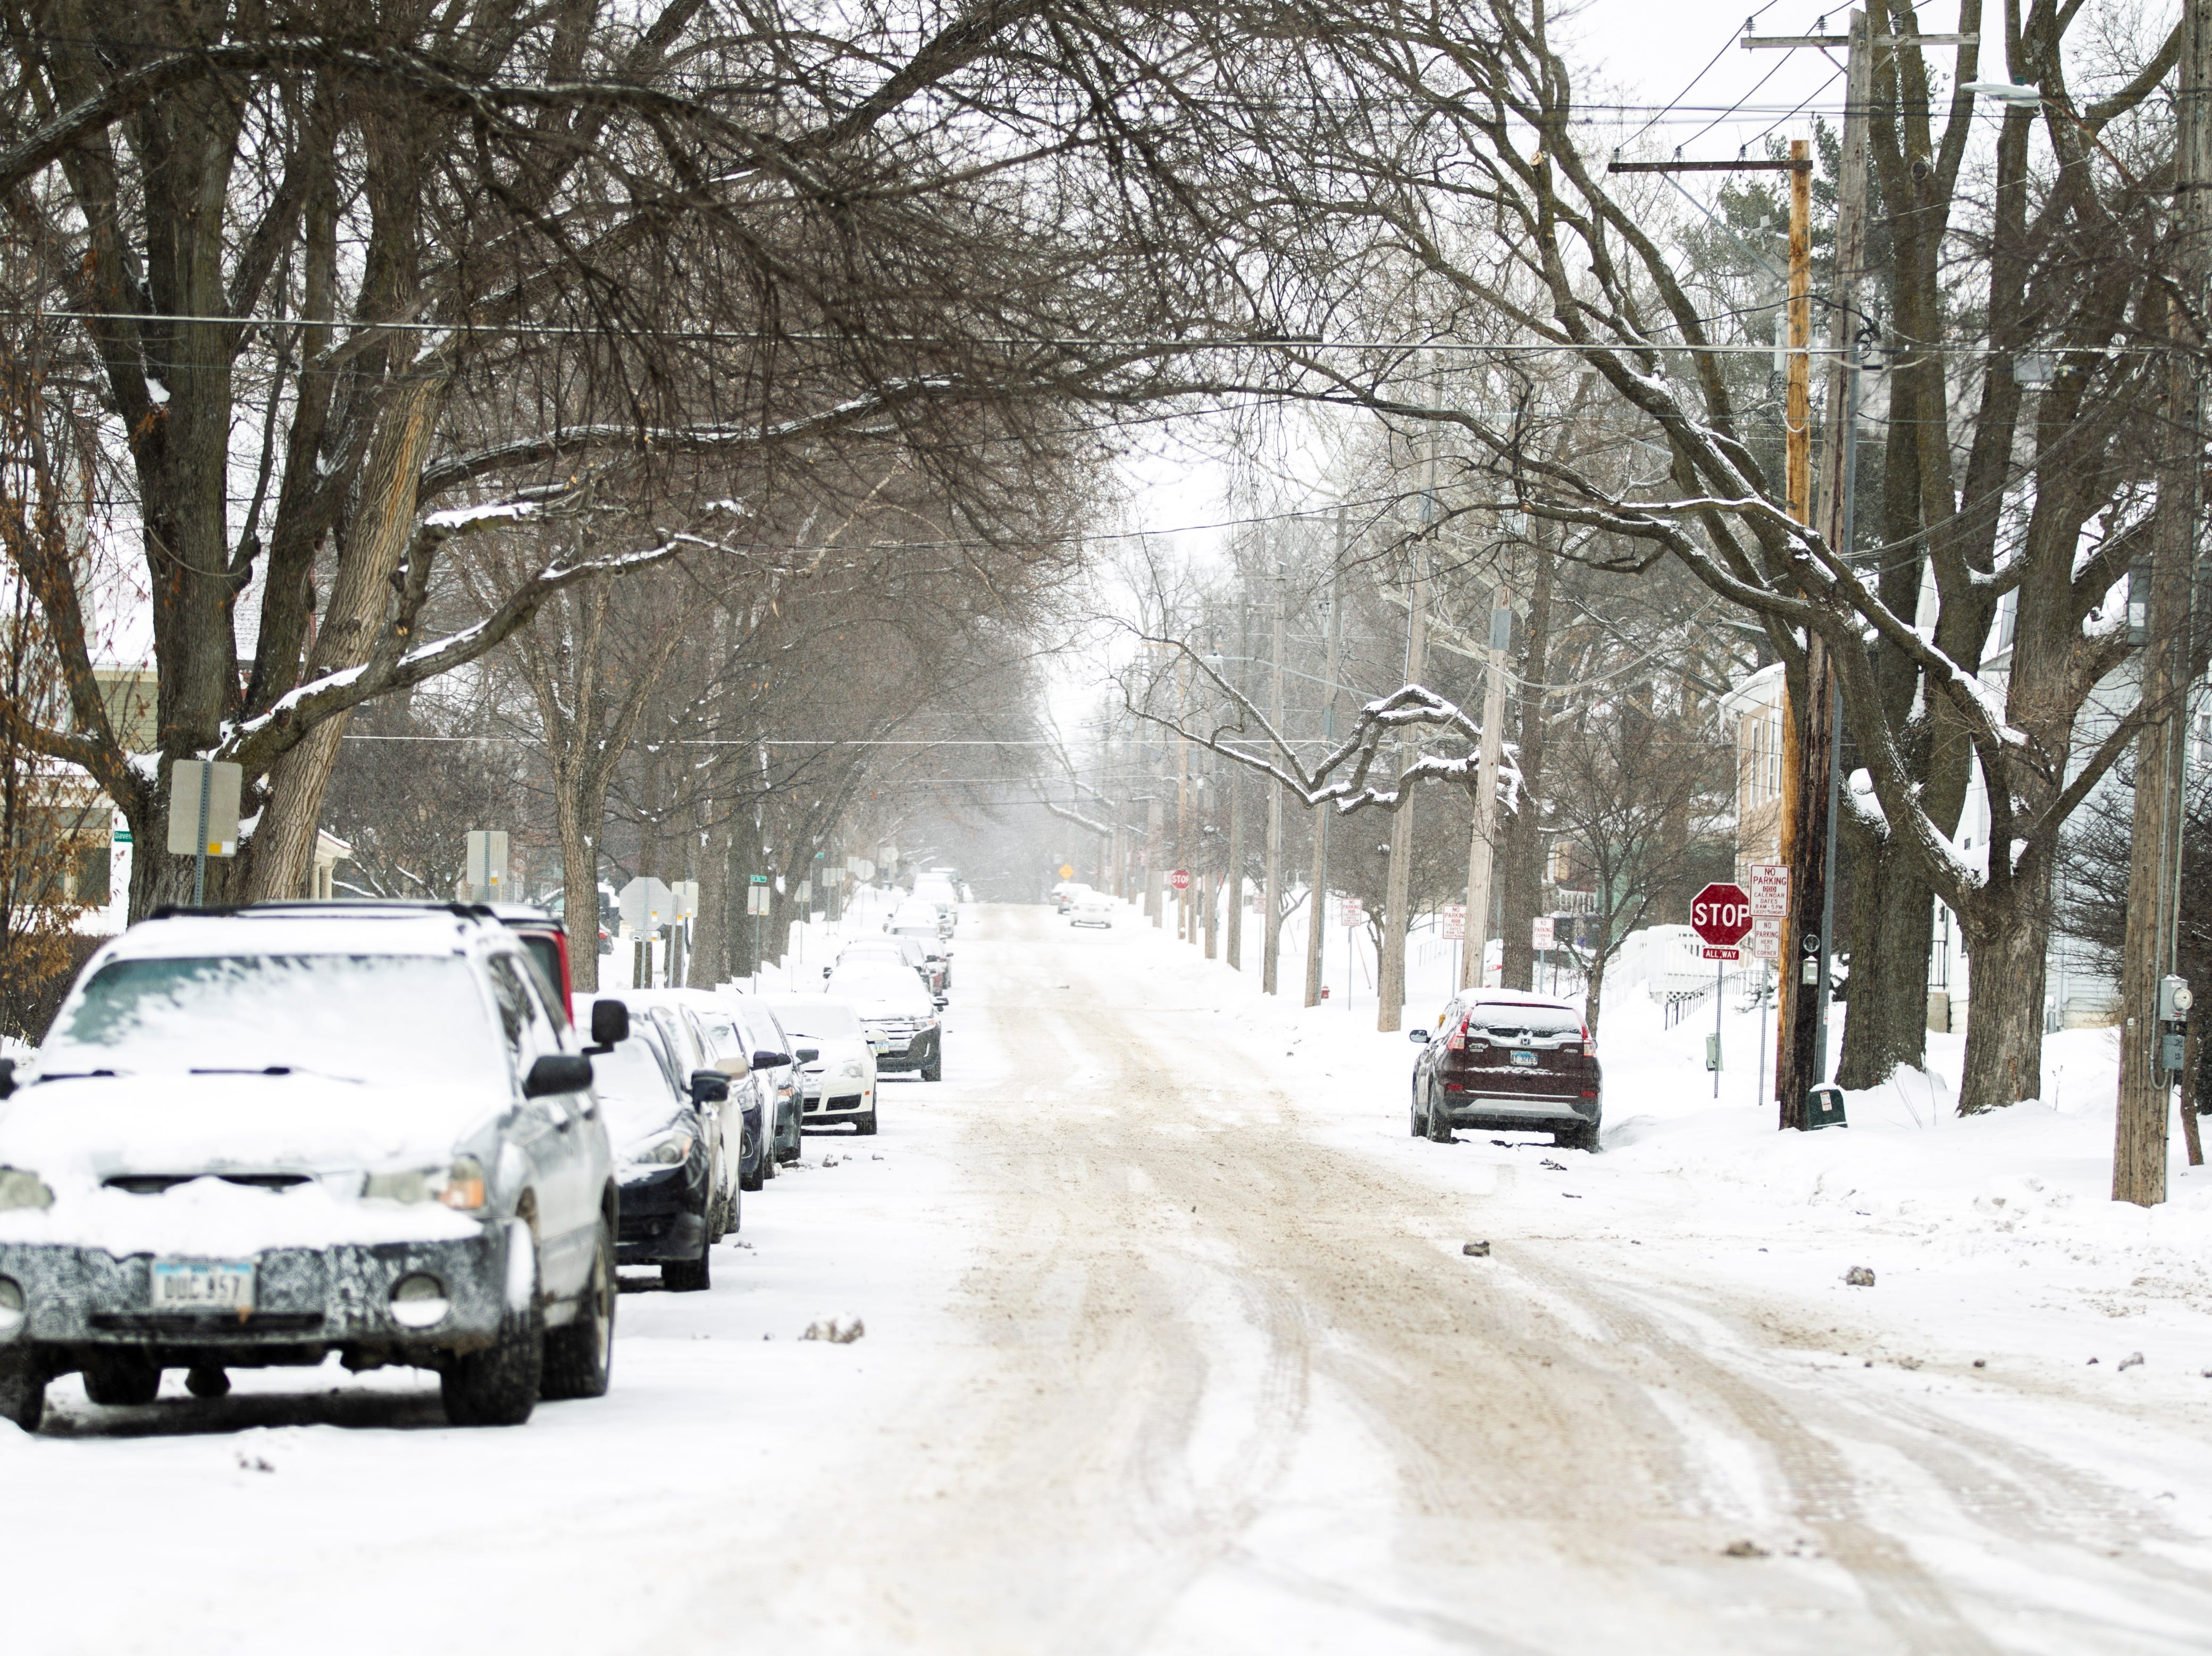 Cars park on opposite sides of the street as snow falls on Thursday, Jan. 31, 2019, along North Linn Street in Iowa City, Iowa.